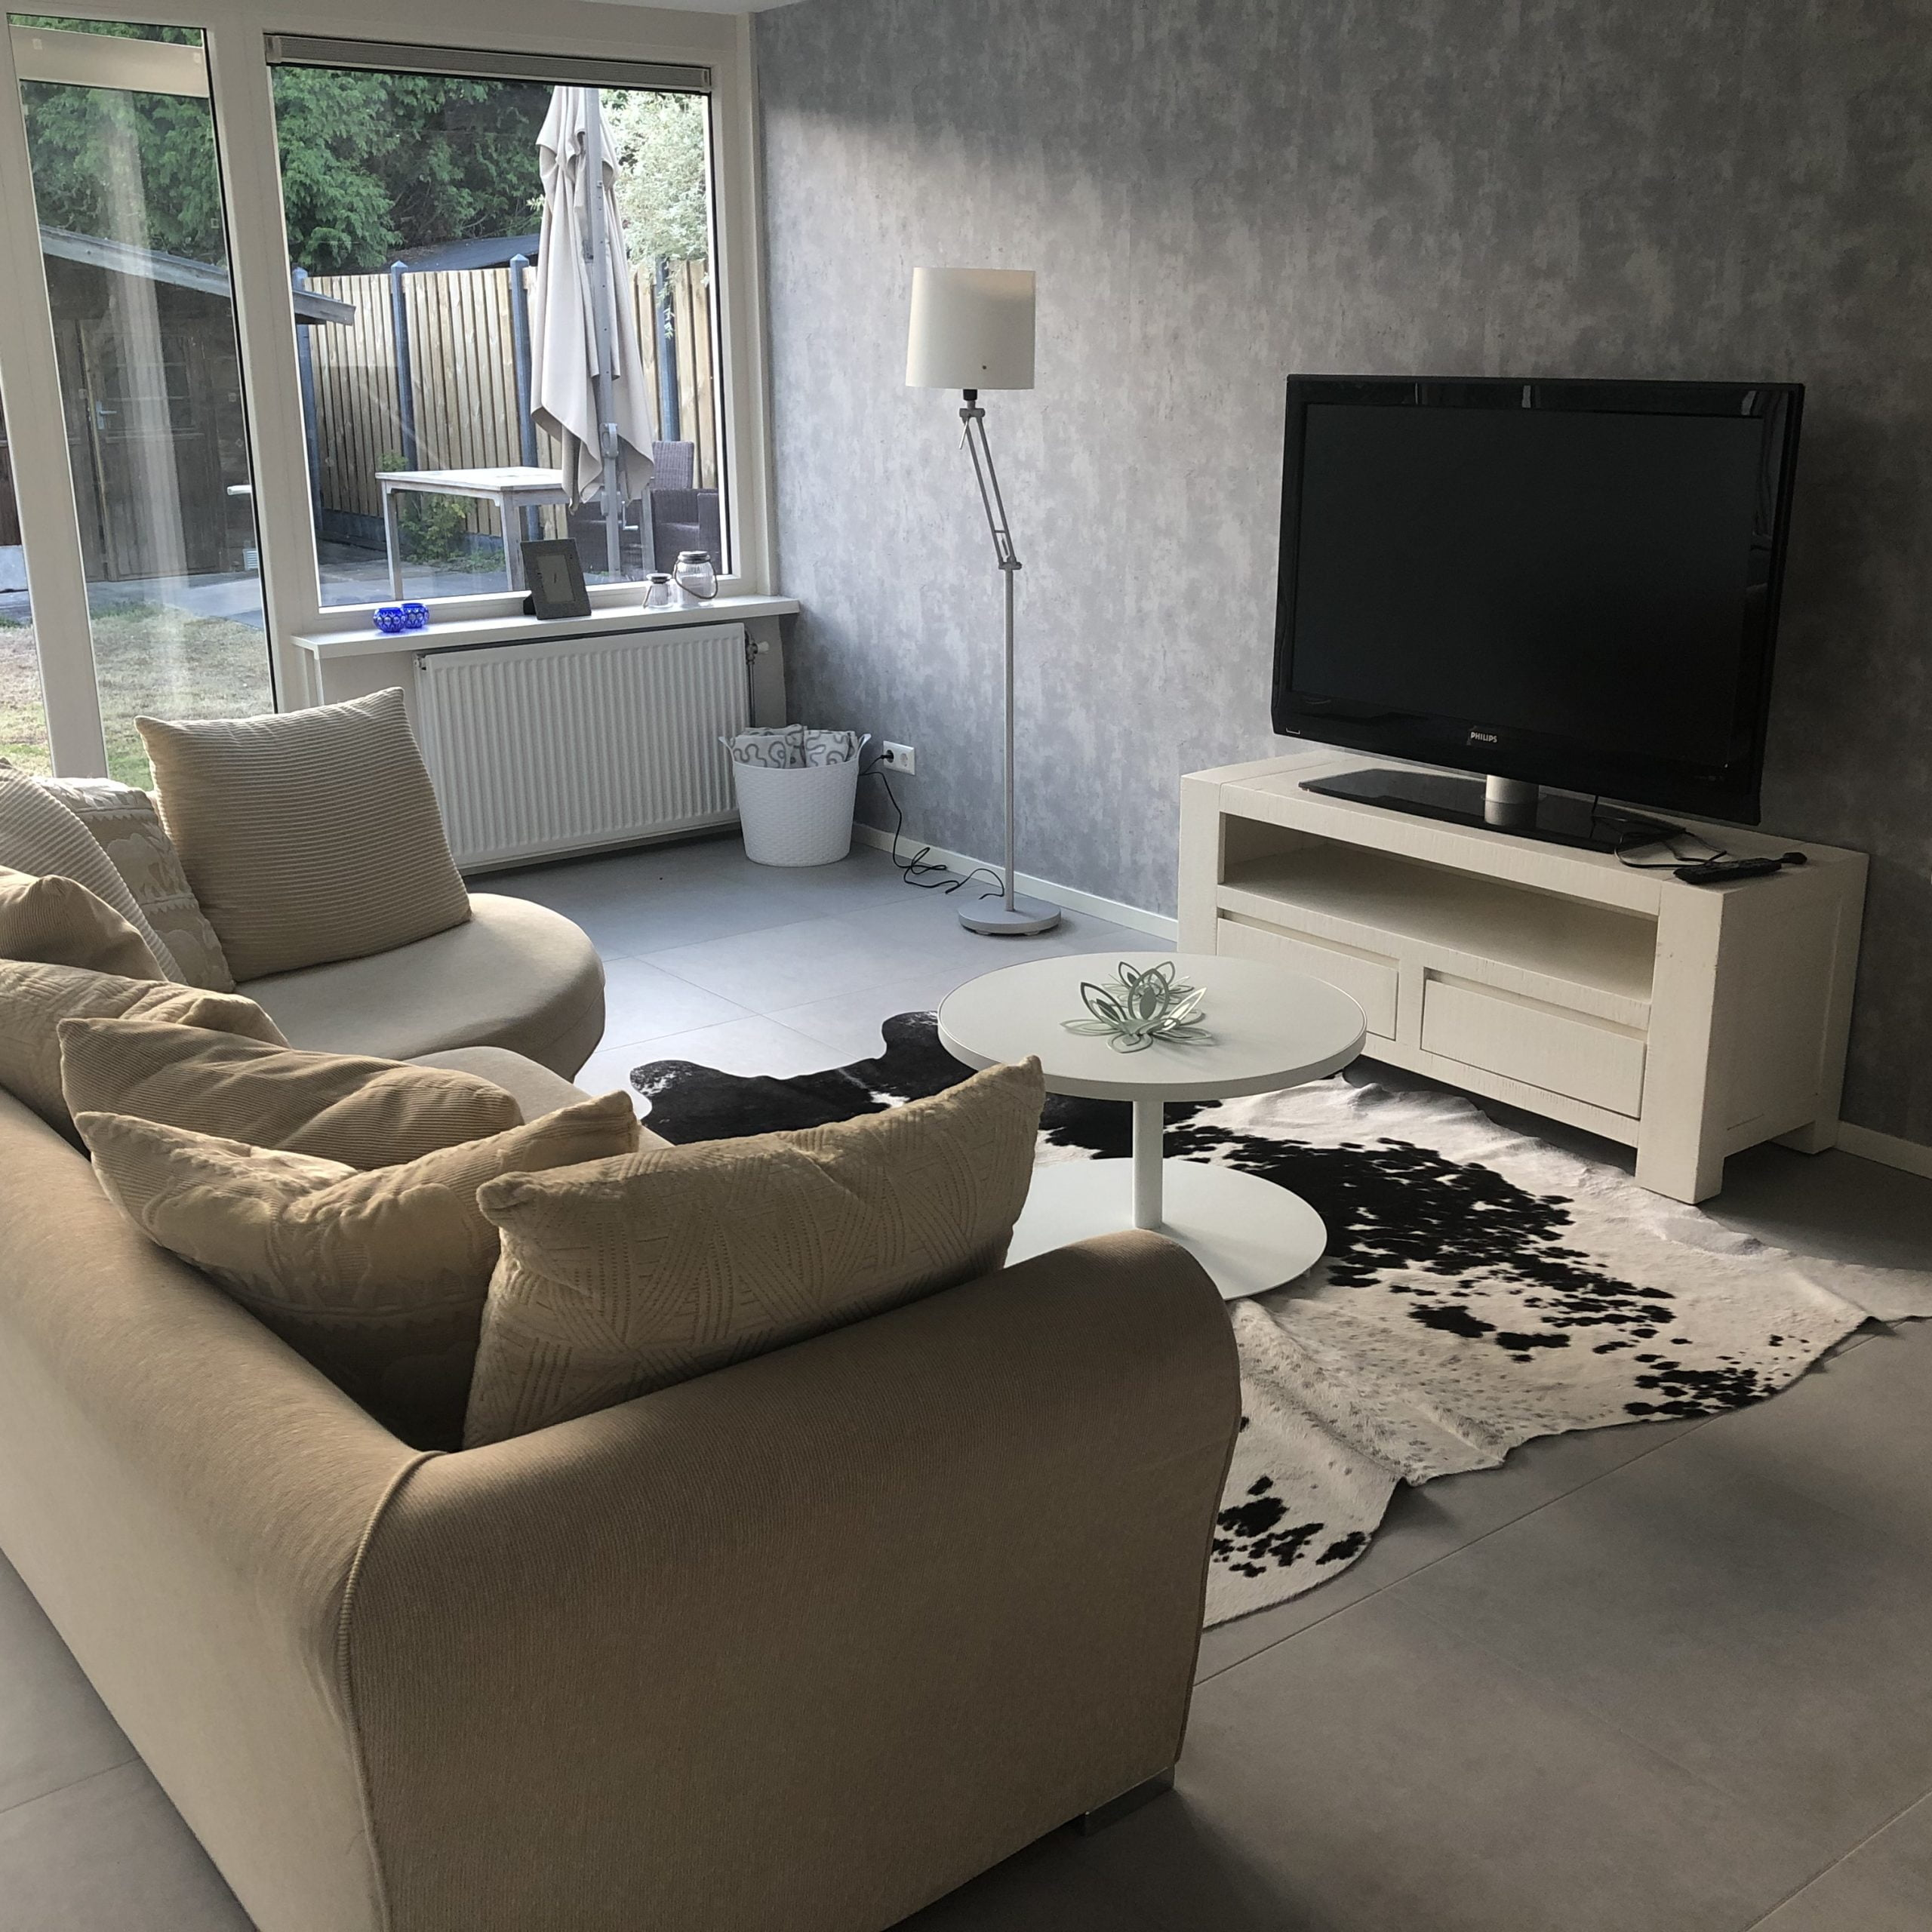 Home for expats near Antwerp port